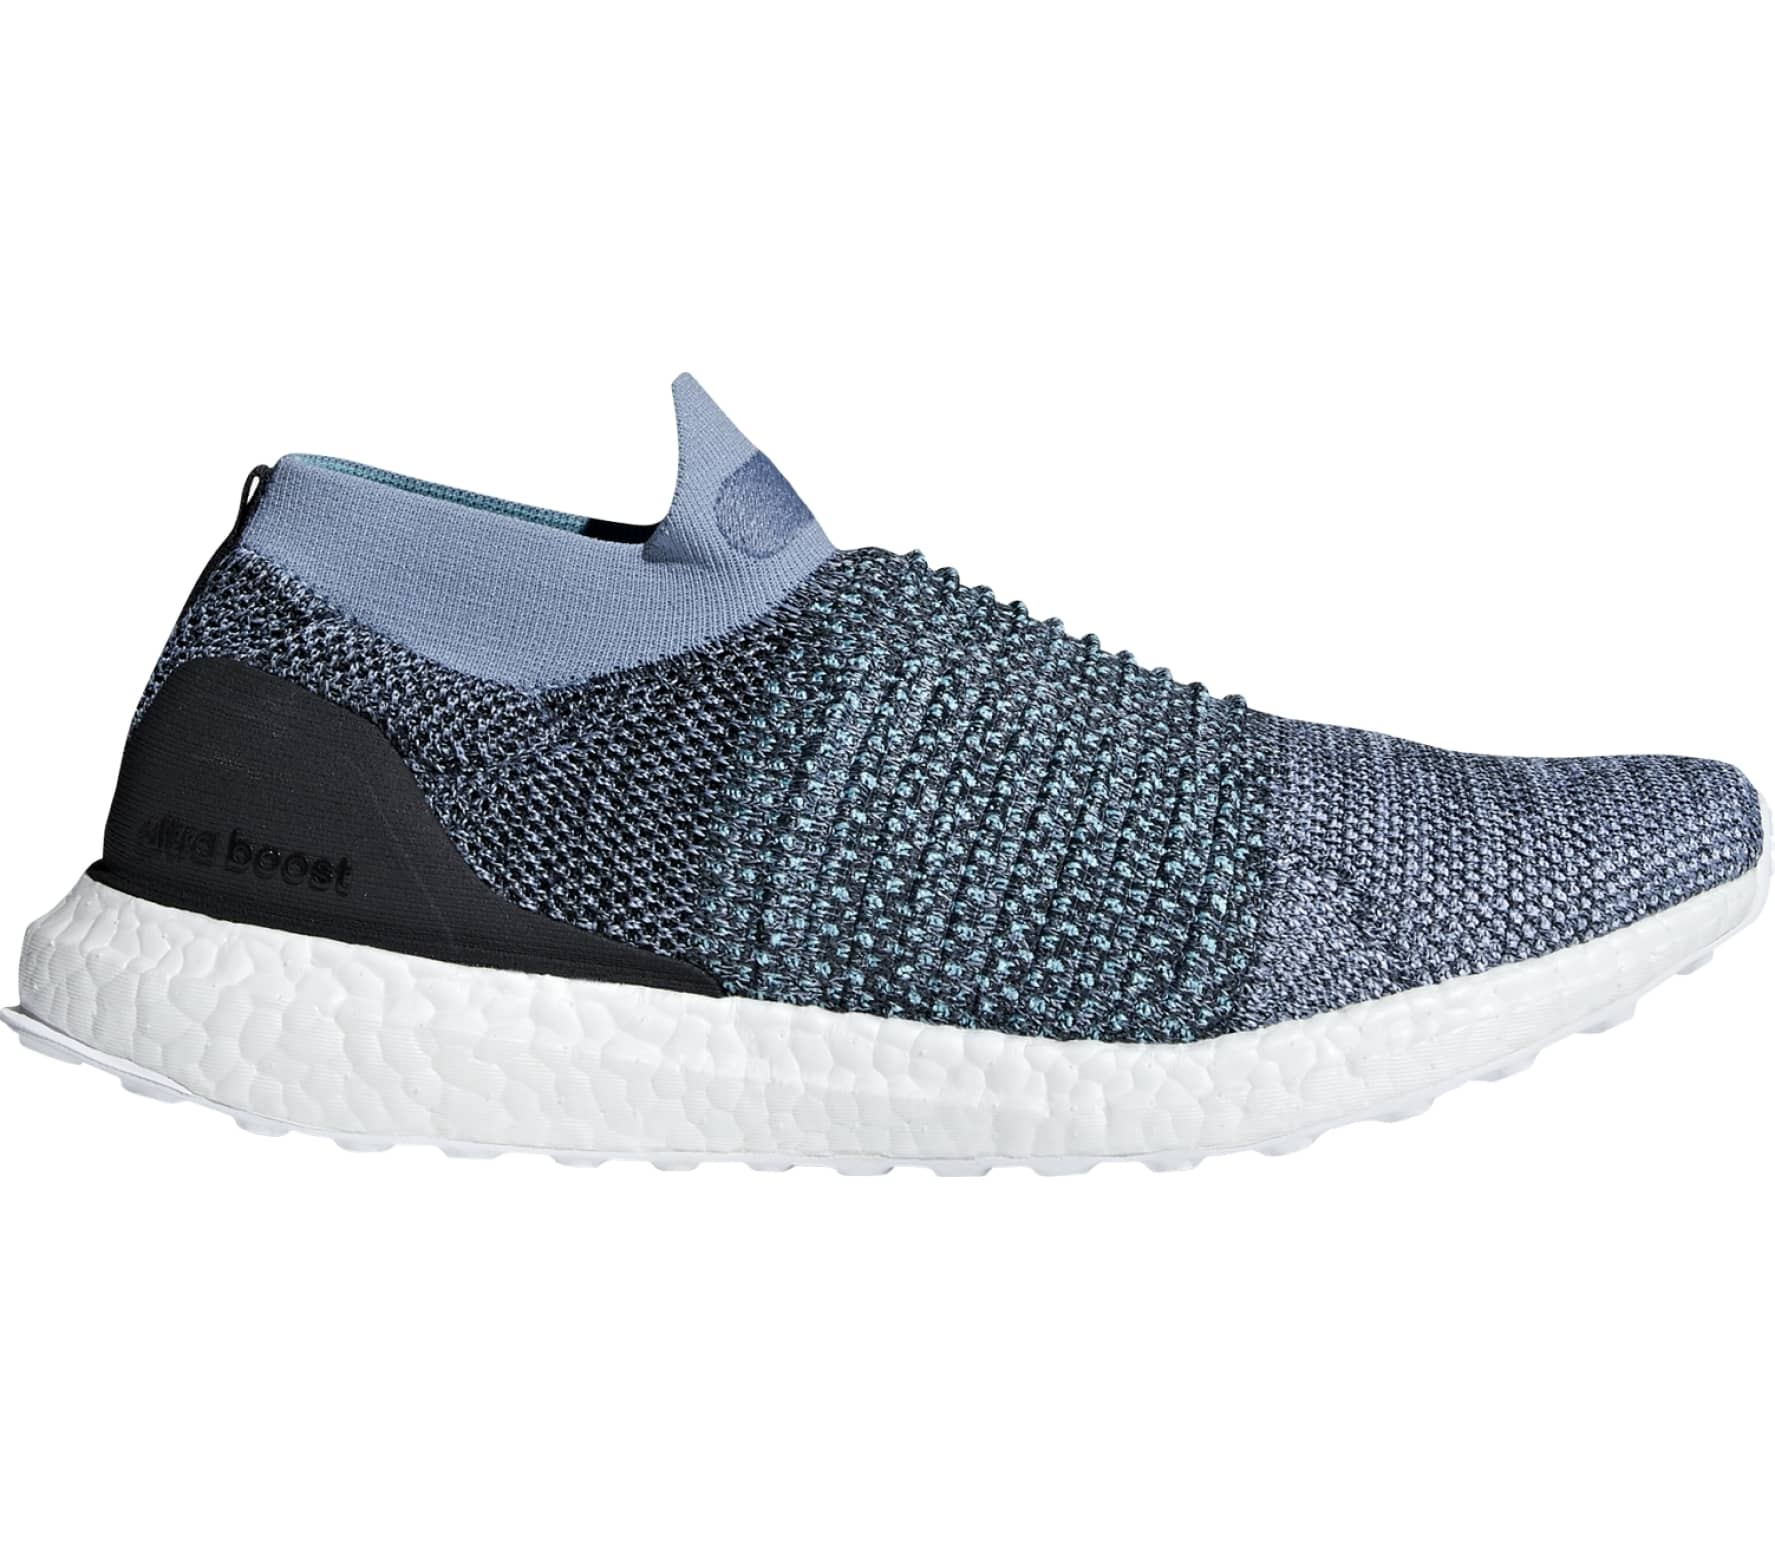 f2c7547114f Adidas - UltraBOOST Laceless Parley men s running shoes (blue) - buy ...